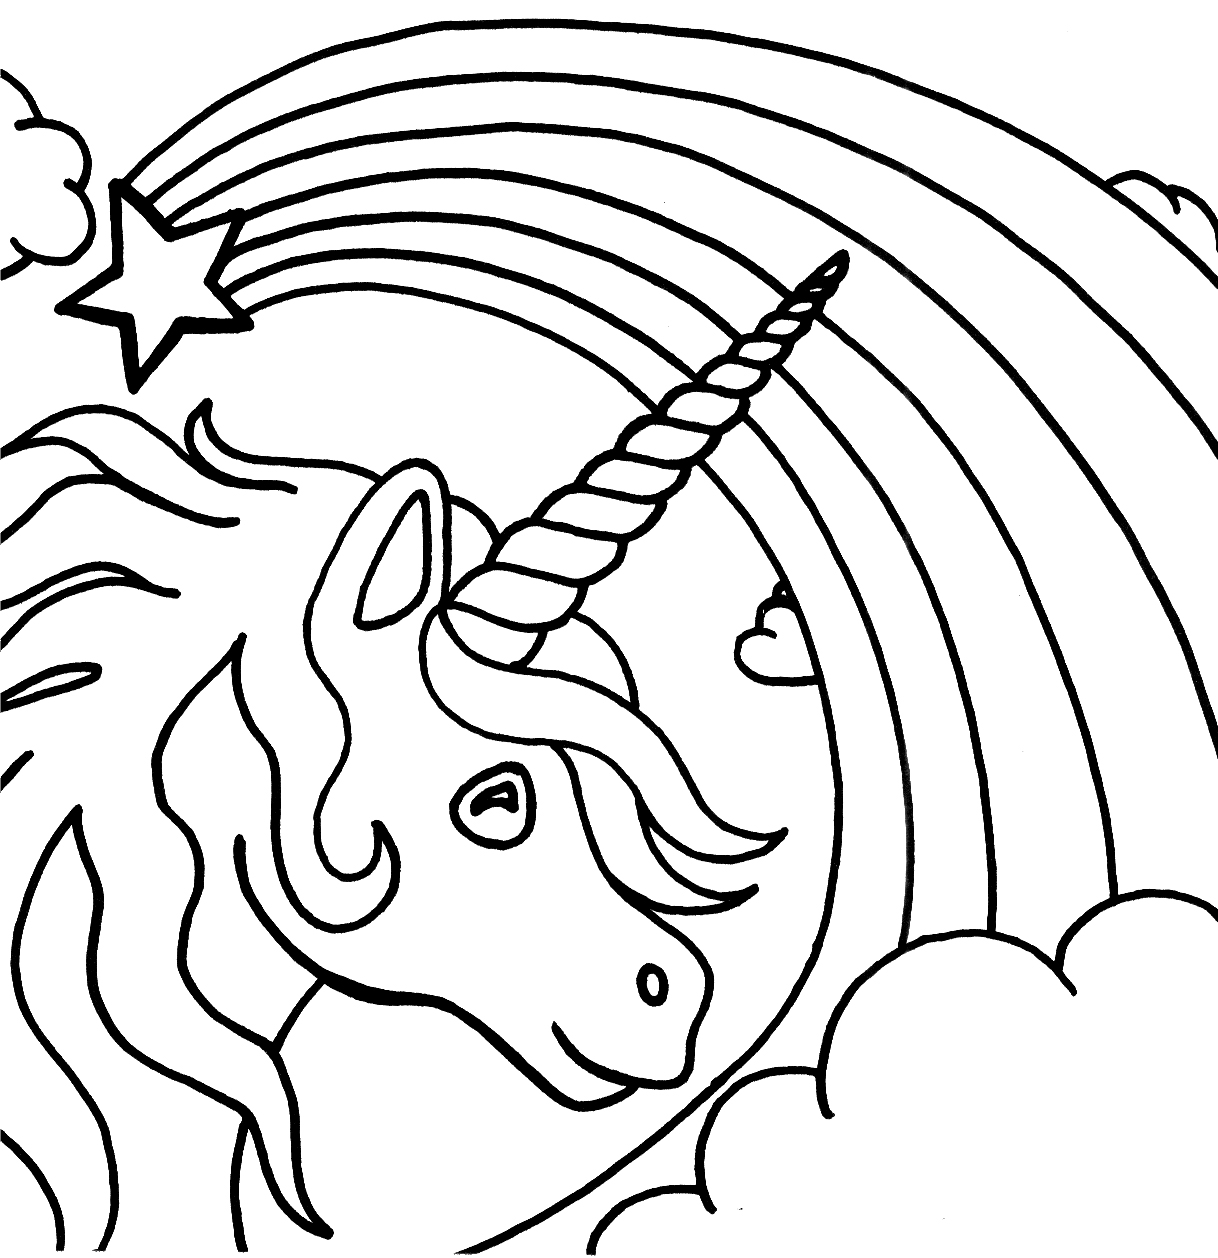 coloring rainbow pages - photo#25